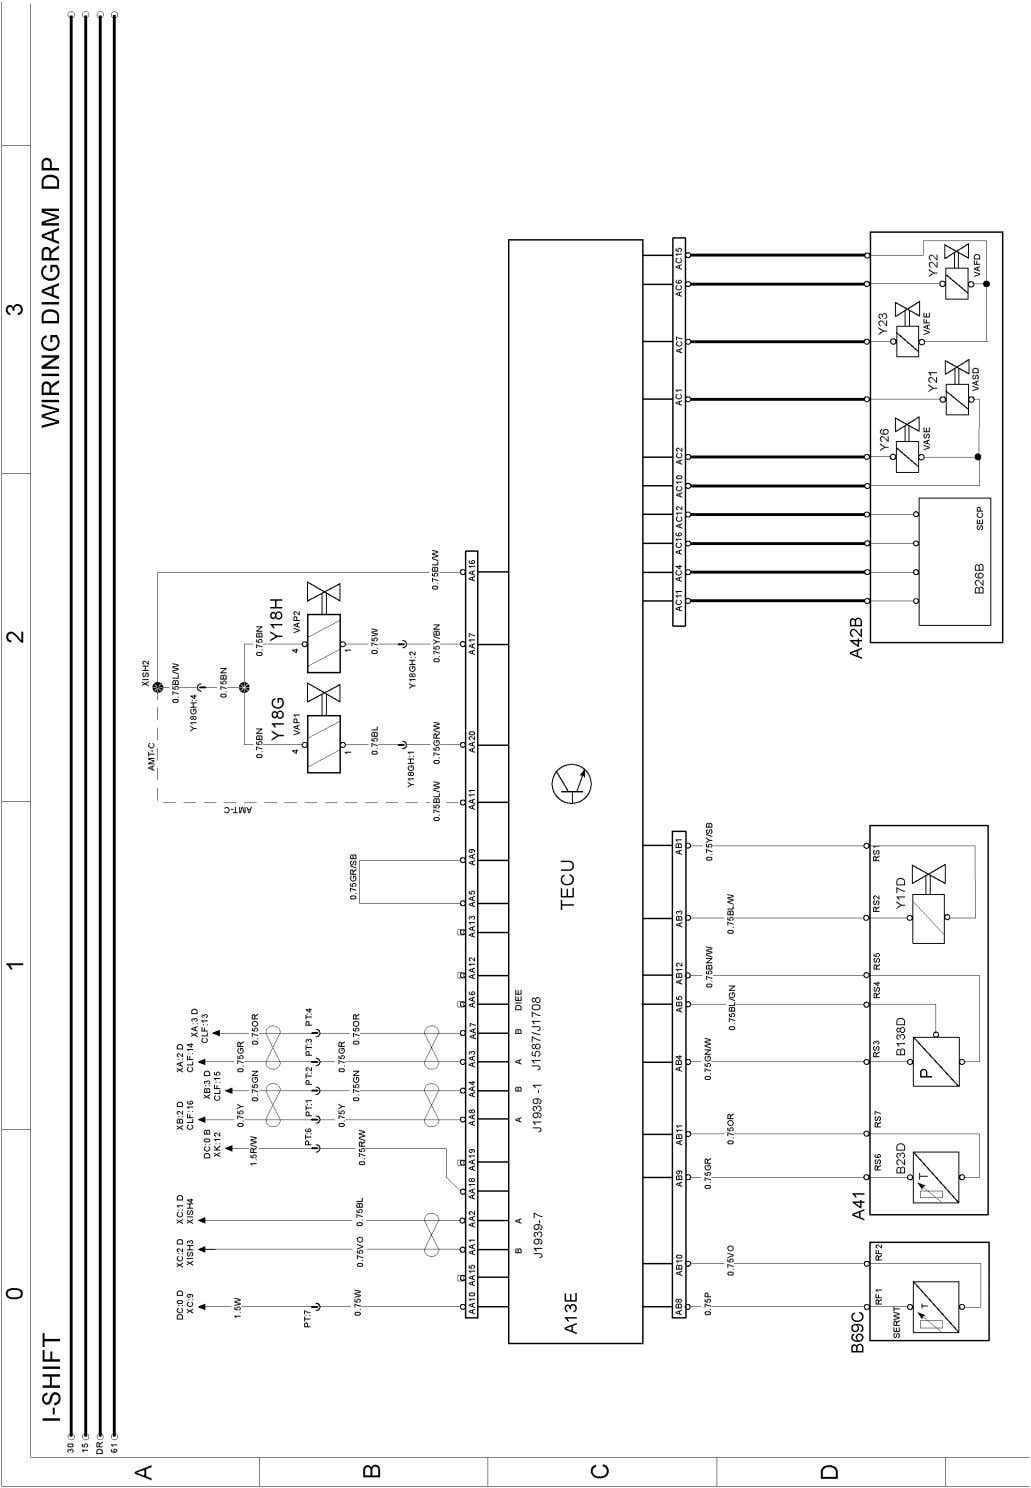 T3057304 Wiring diagram Page 37 (298)